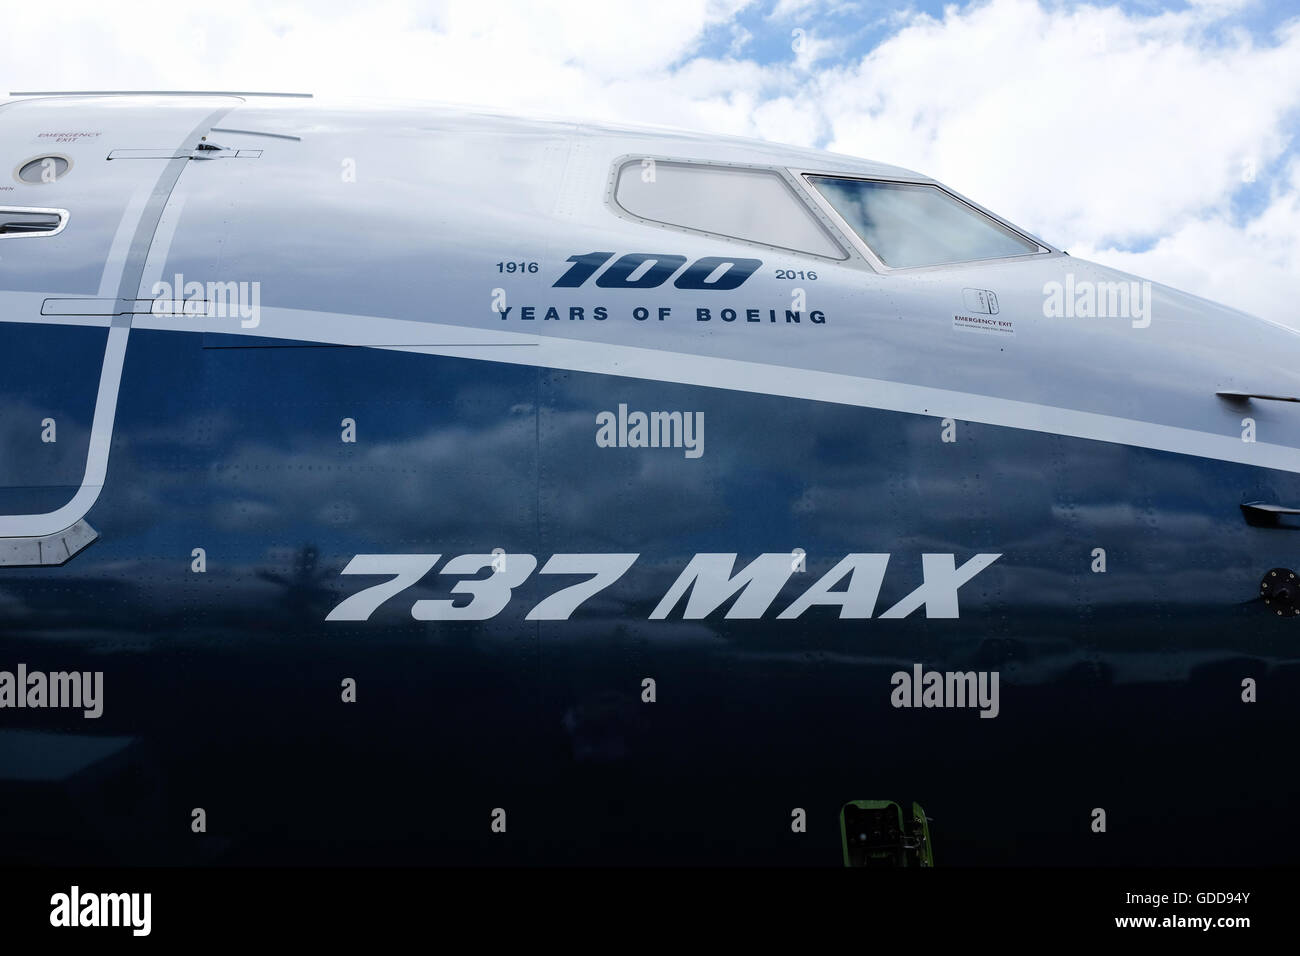 Part of the Boeing 737 Max 8 aircraft. - Stock Image